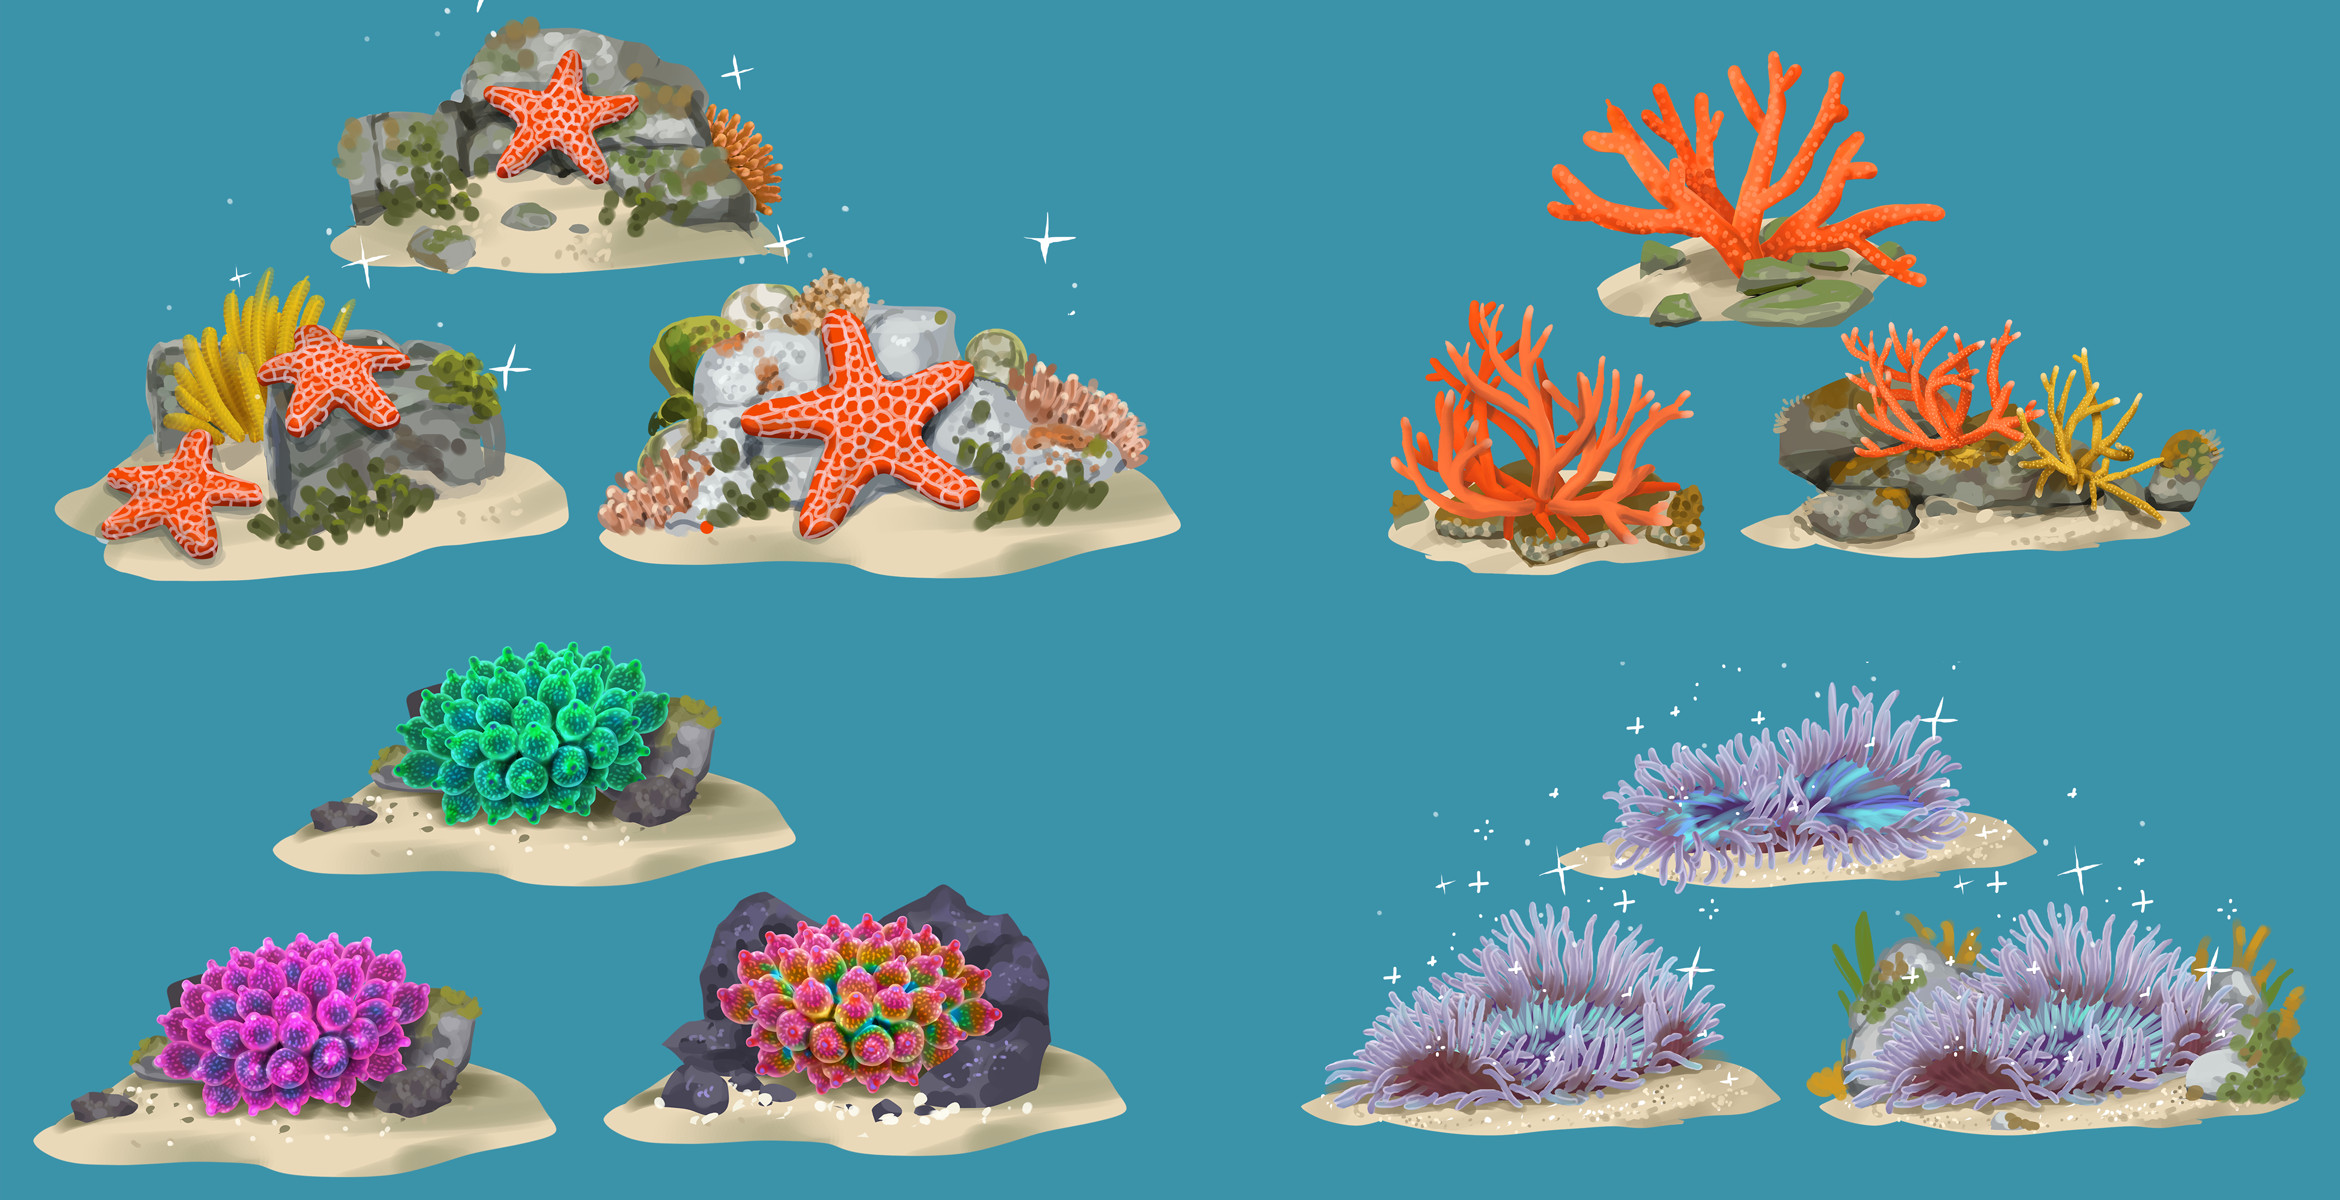 Concepts for plant and animal biome decorations. Sea Stars has a meta-game of bringing life back to different biomes around the world through a decoration mechanic. However instead of using furniture items the player decorates using plant and animal life.